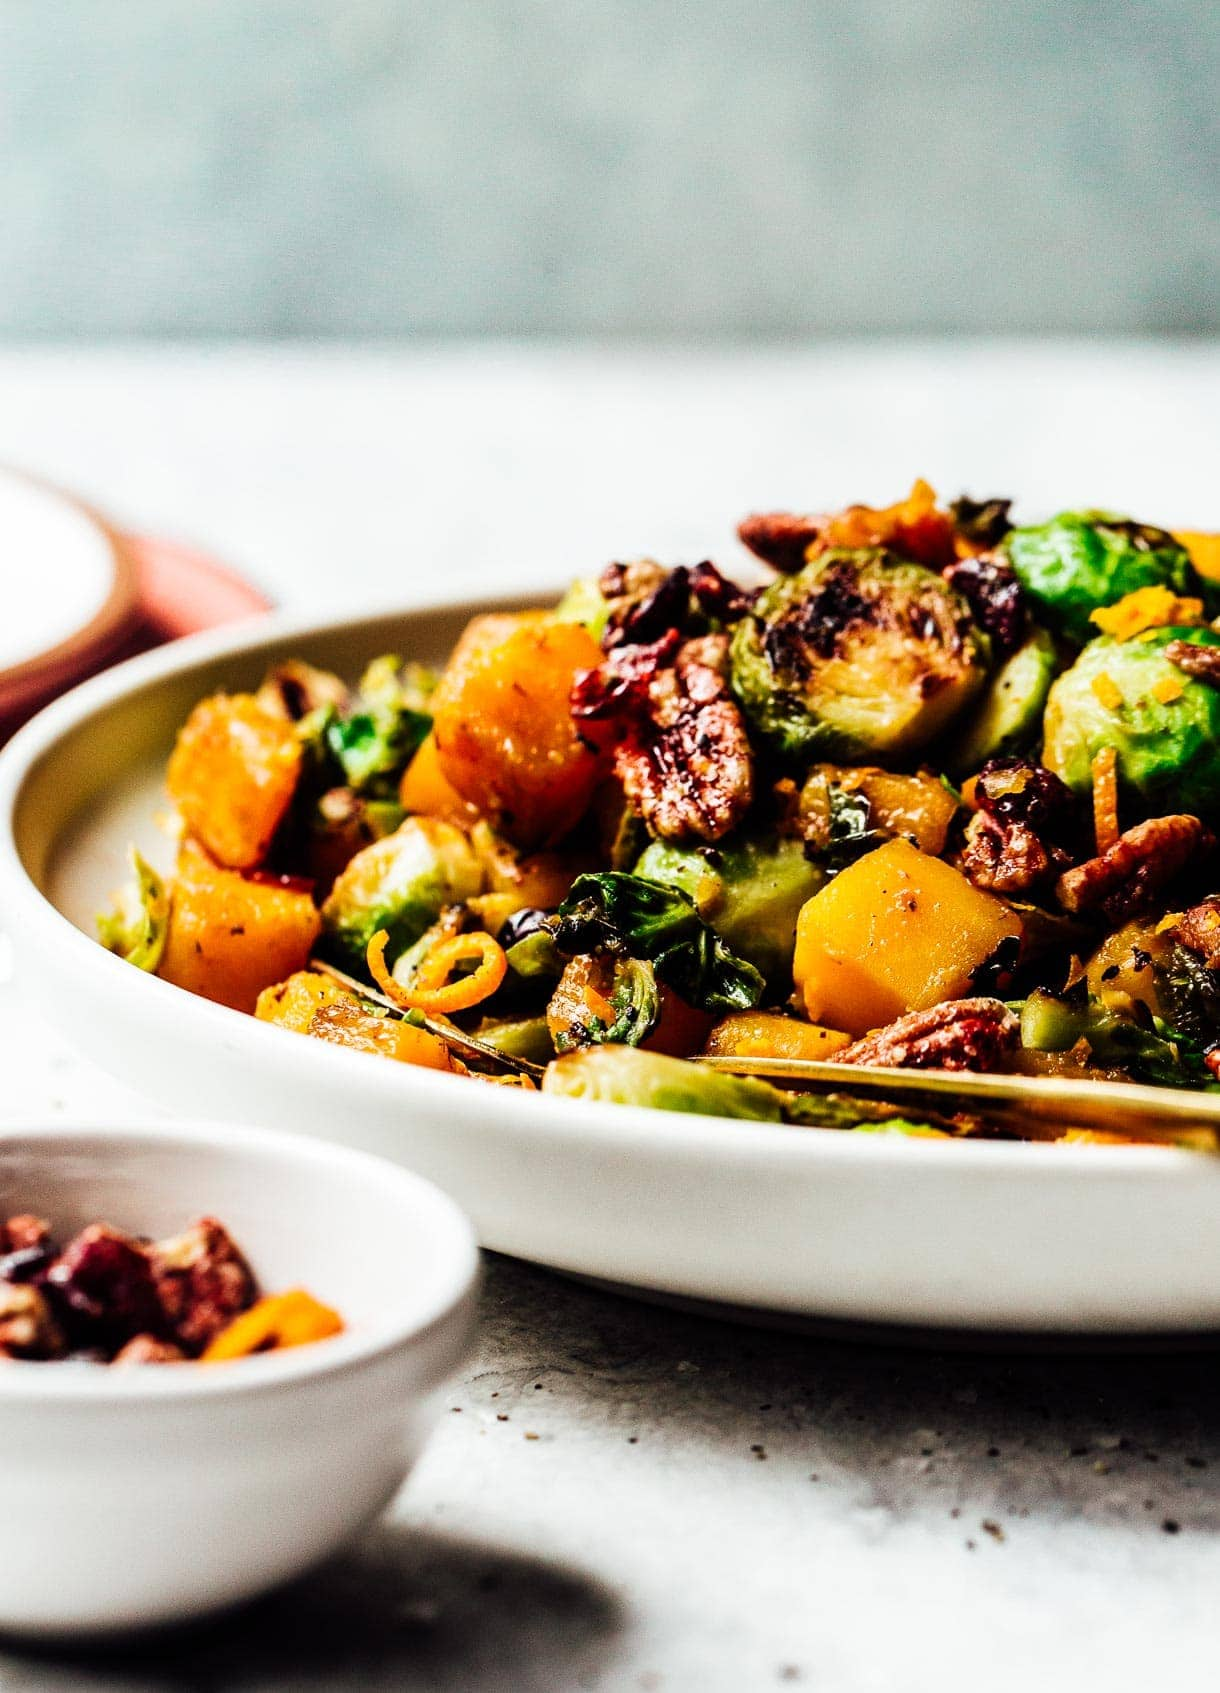 Orange Glazed Butternut Squash and Brussels Sprouts with pecans